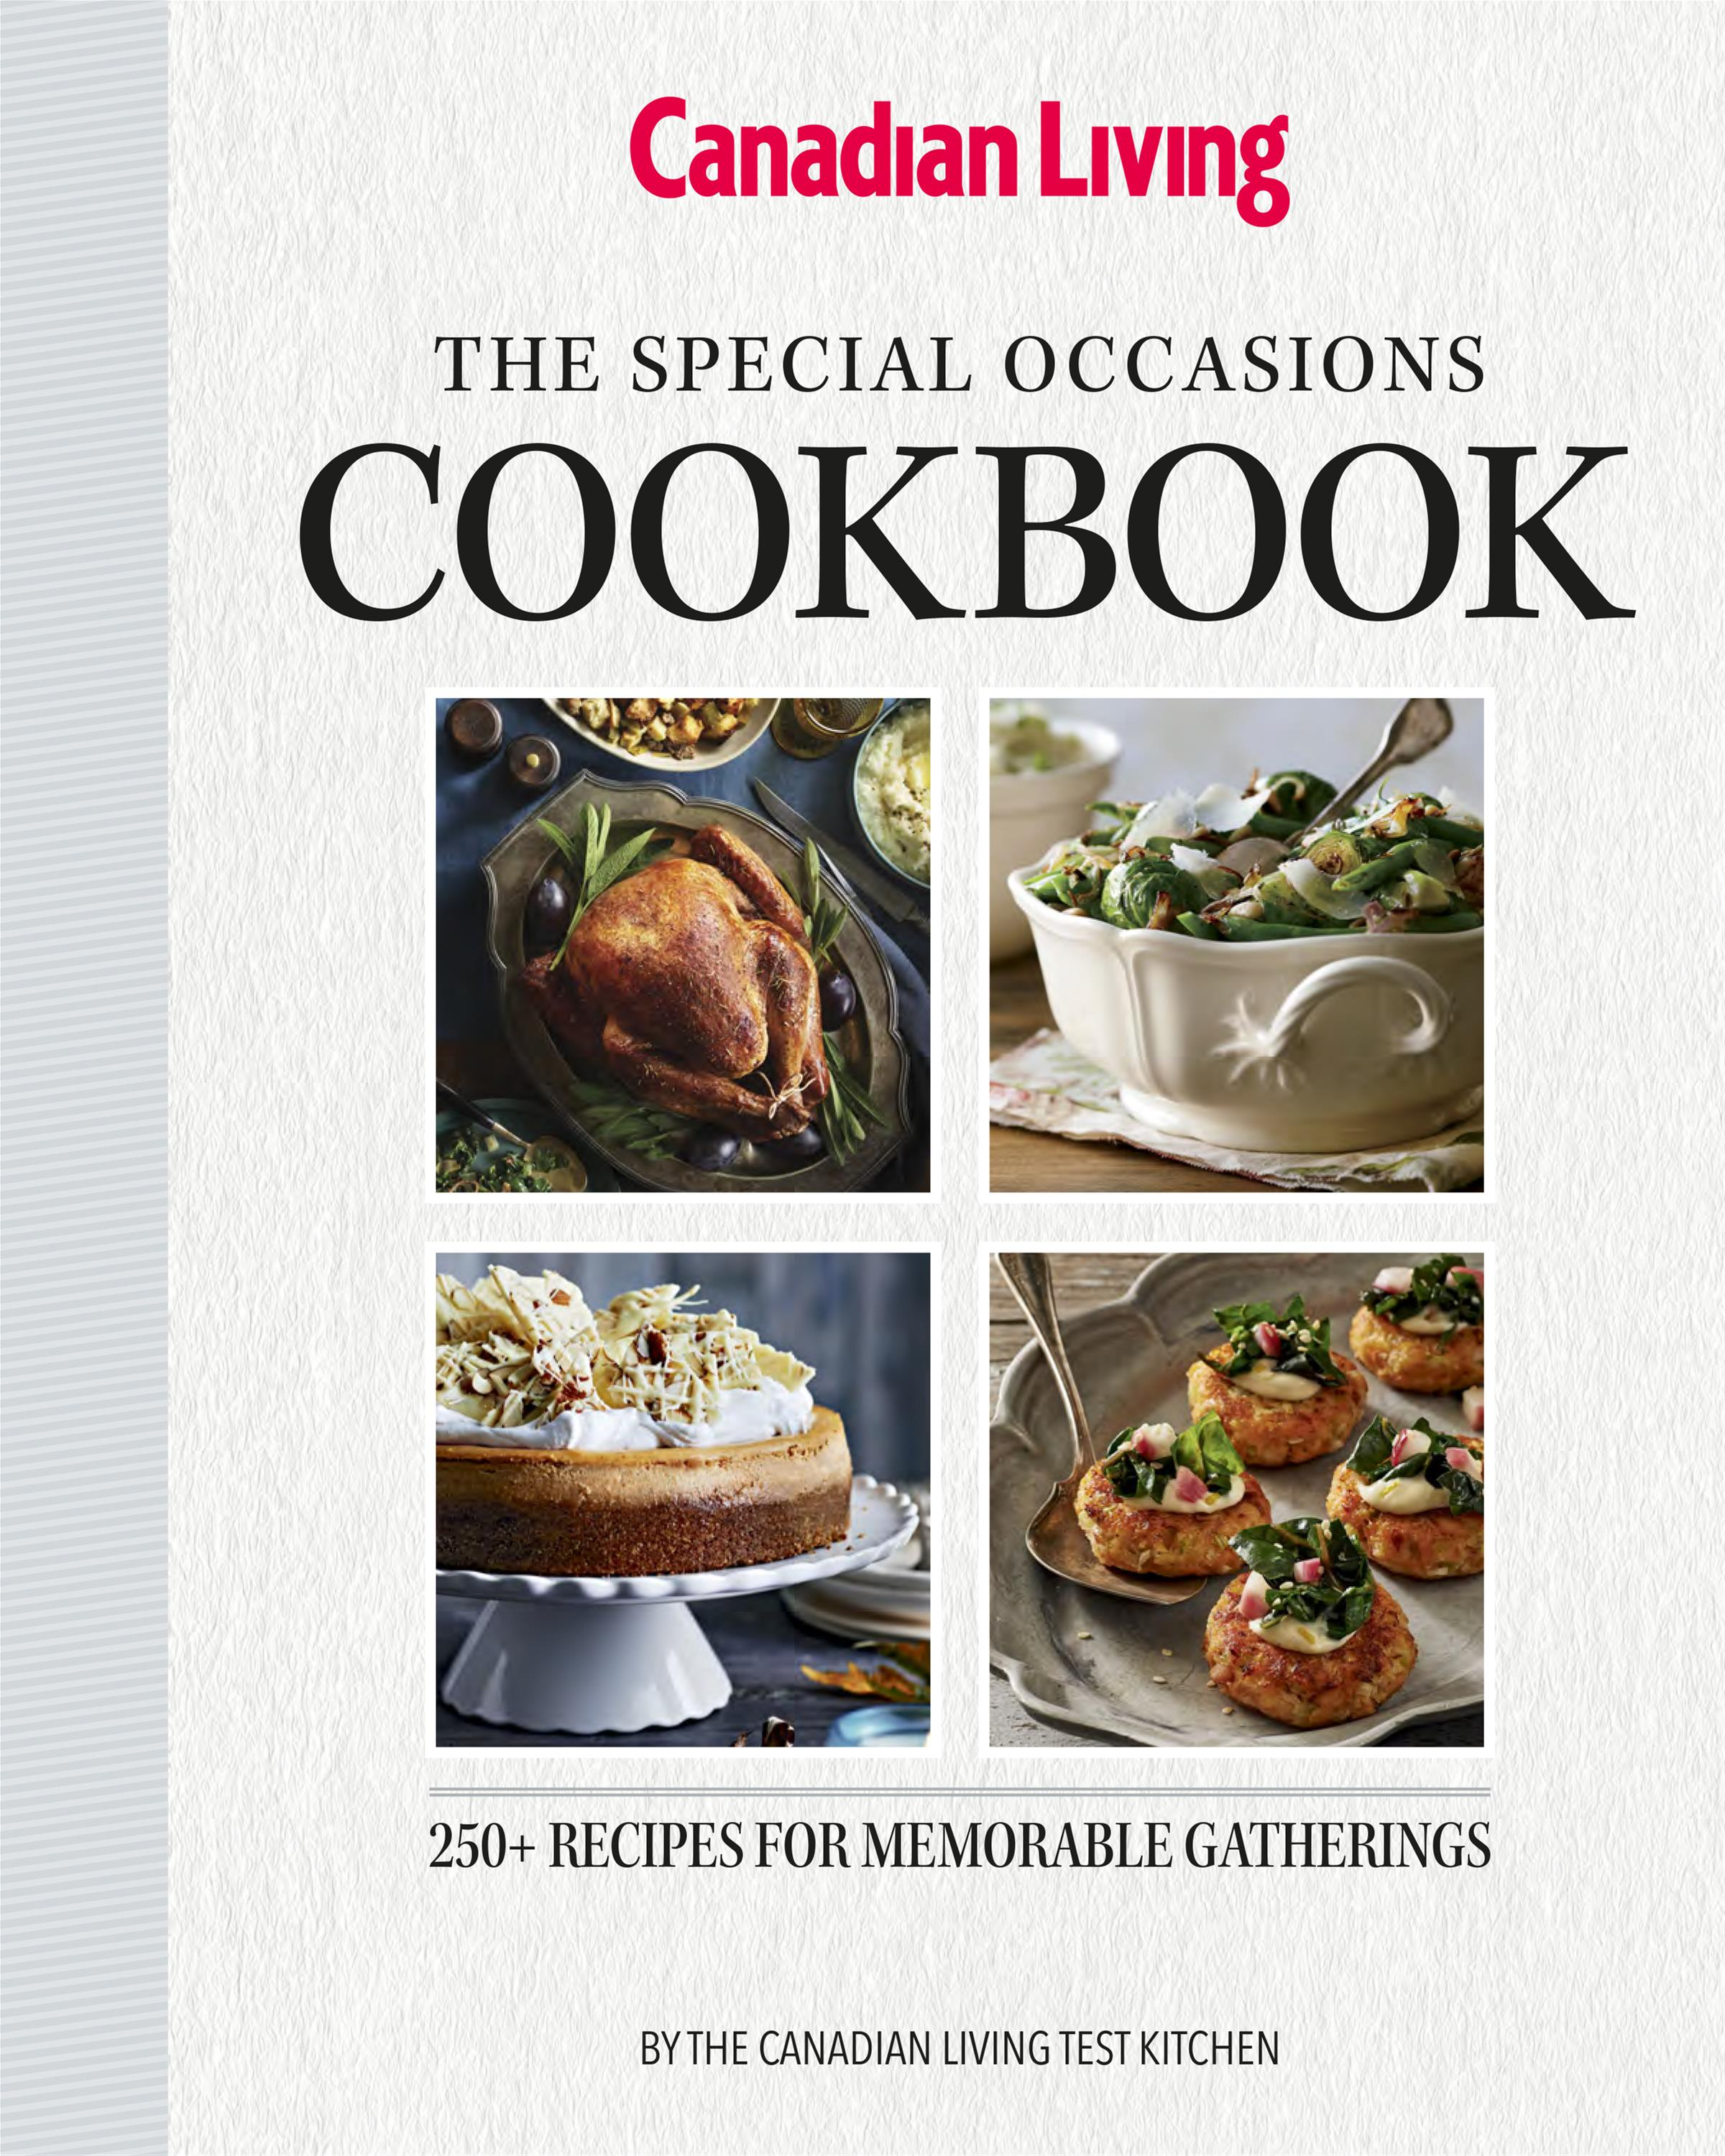 The Special Occasions Cookbook